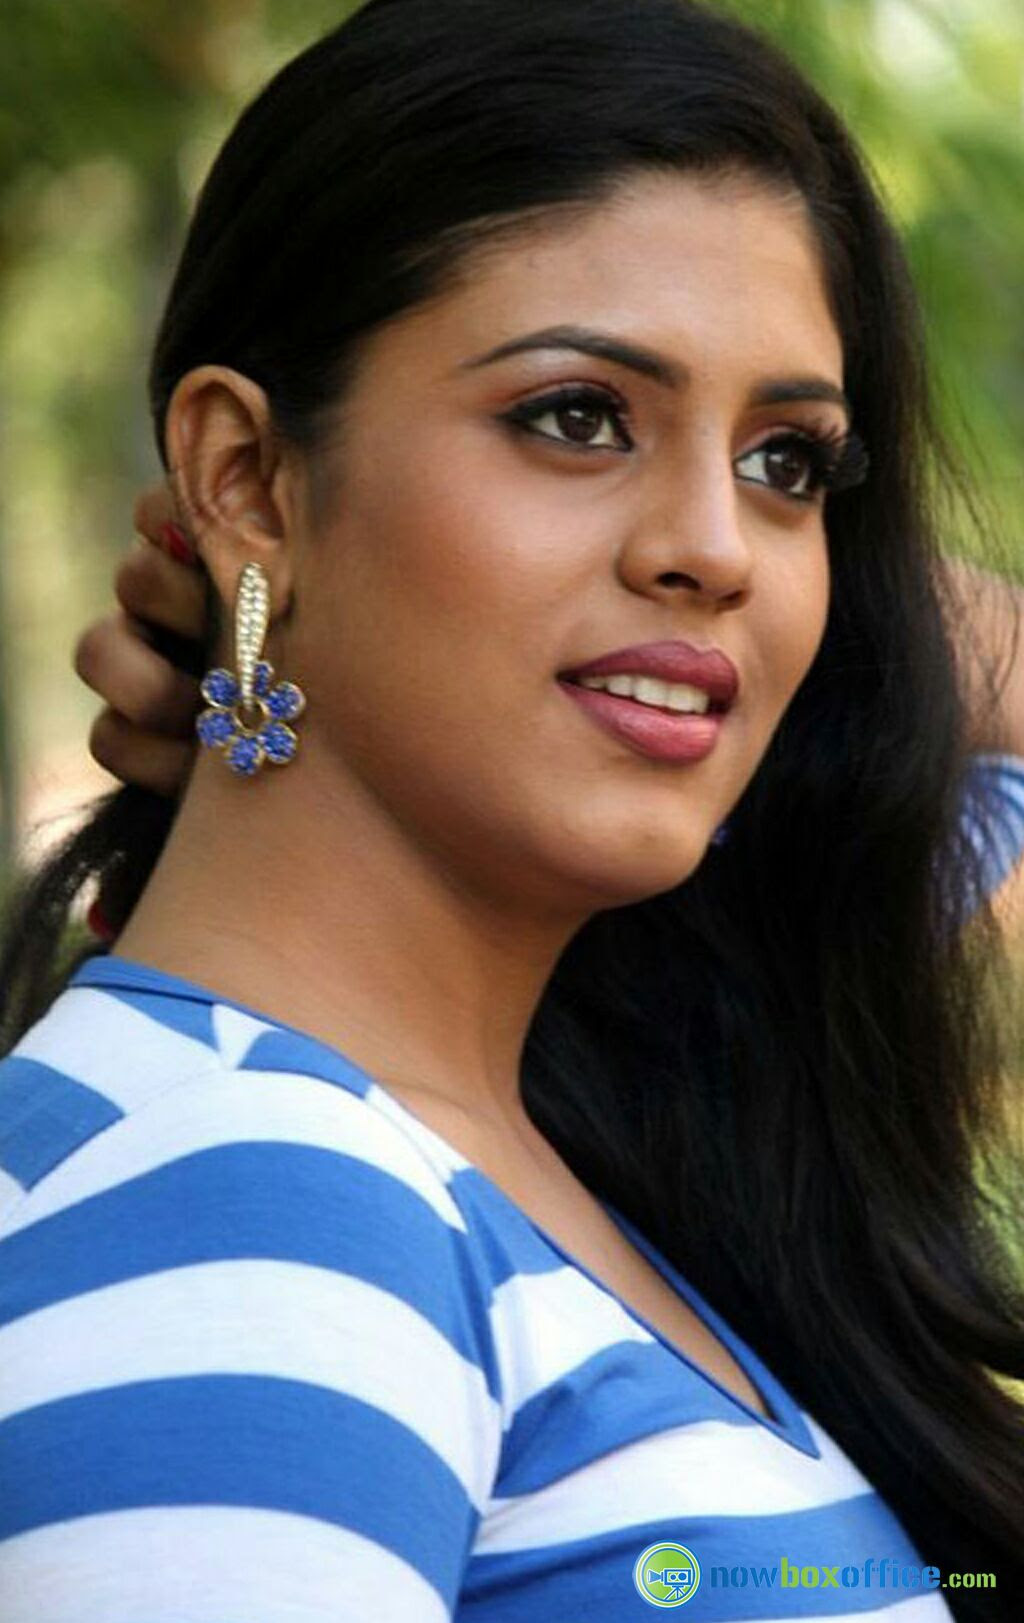 Shruti Sawant stage name Iniya South Indian Film Actress and Model most hottest and beautiful pics